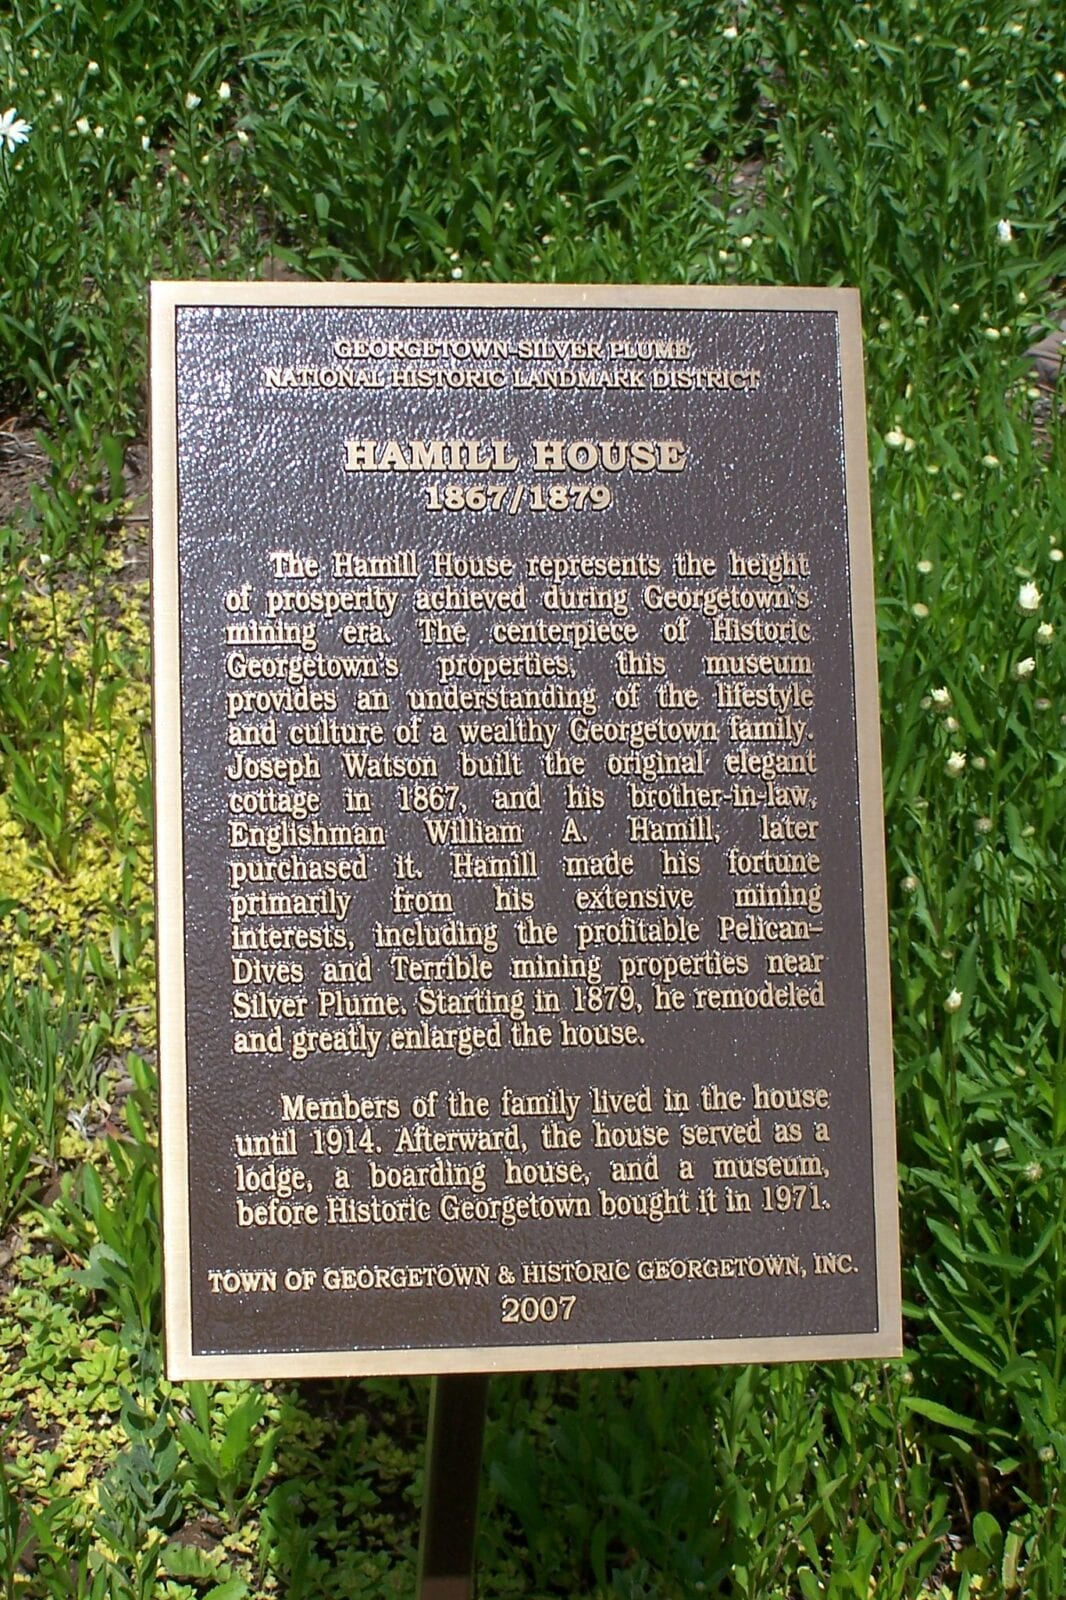 Image of the history sign at the Hamill House Museum in Georgetown, Colorado